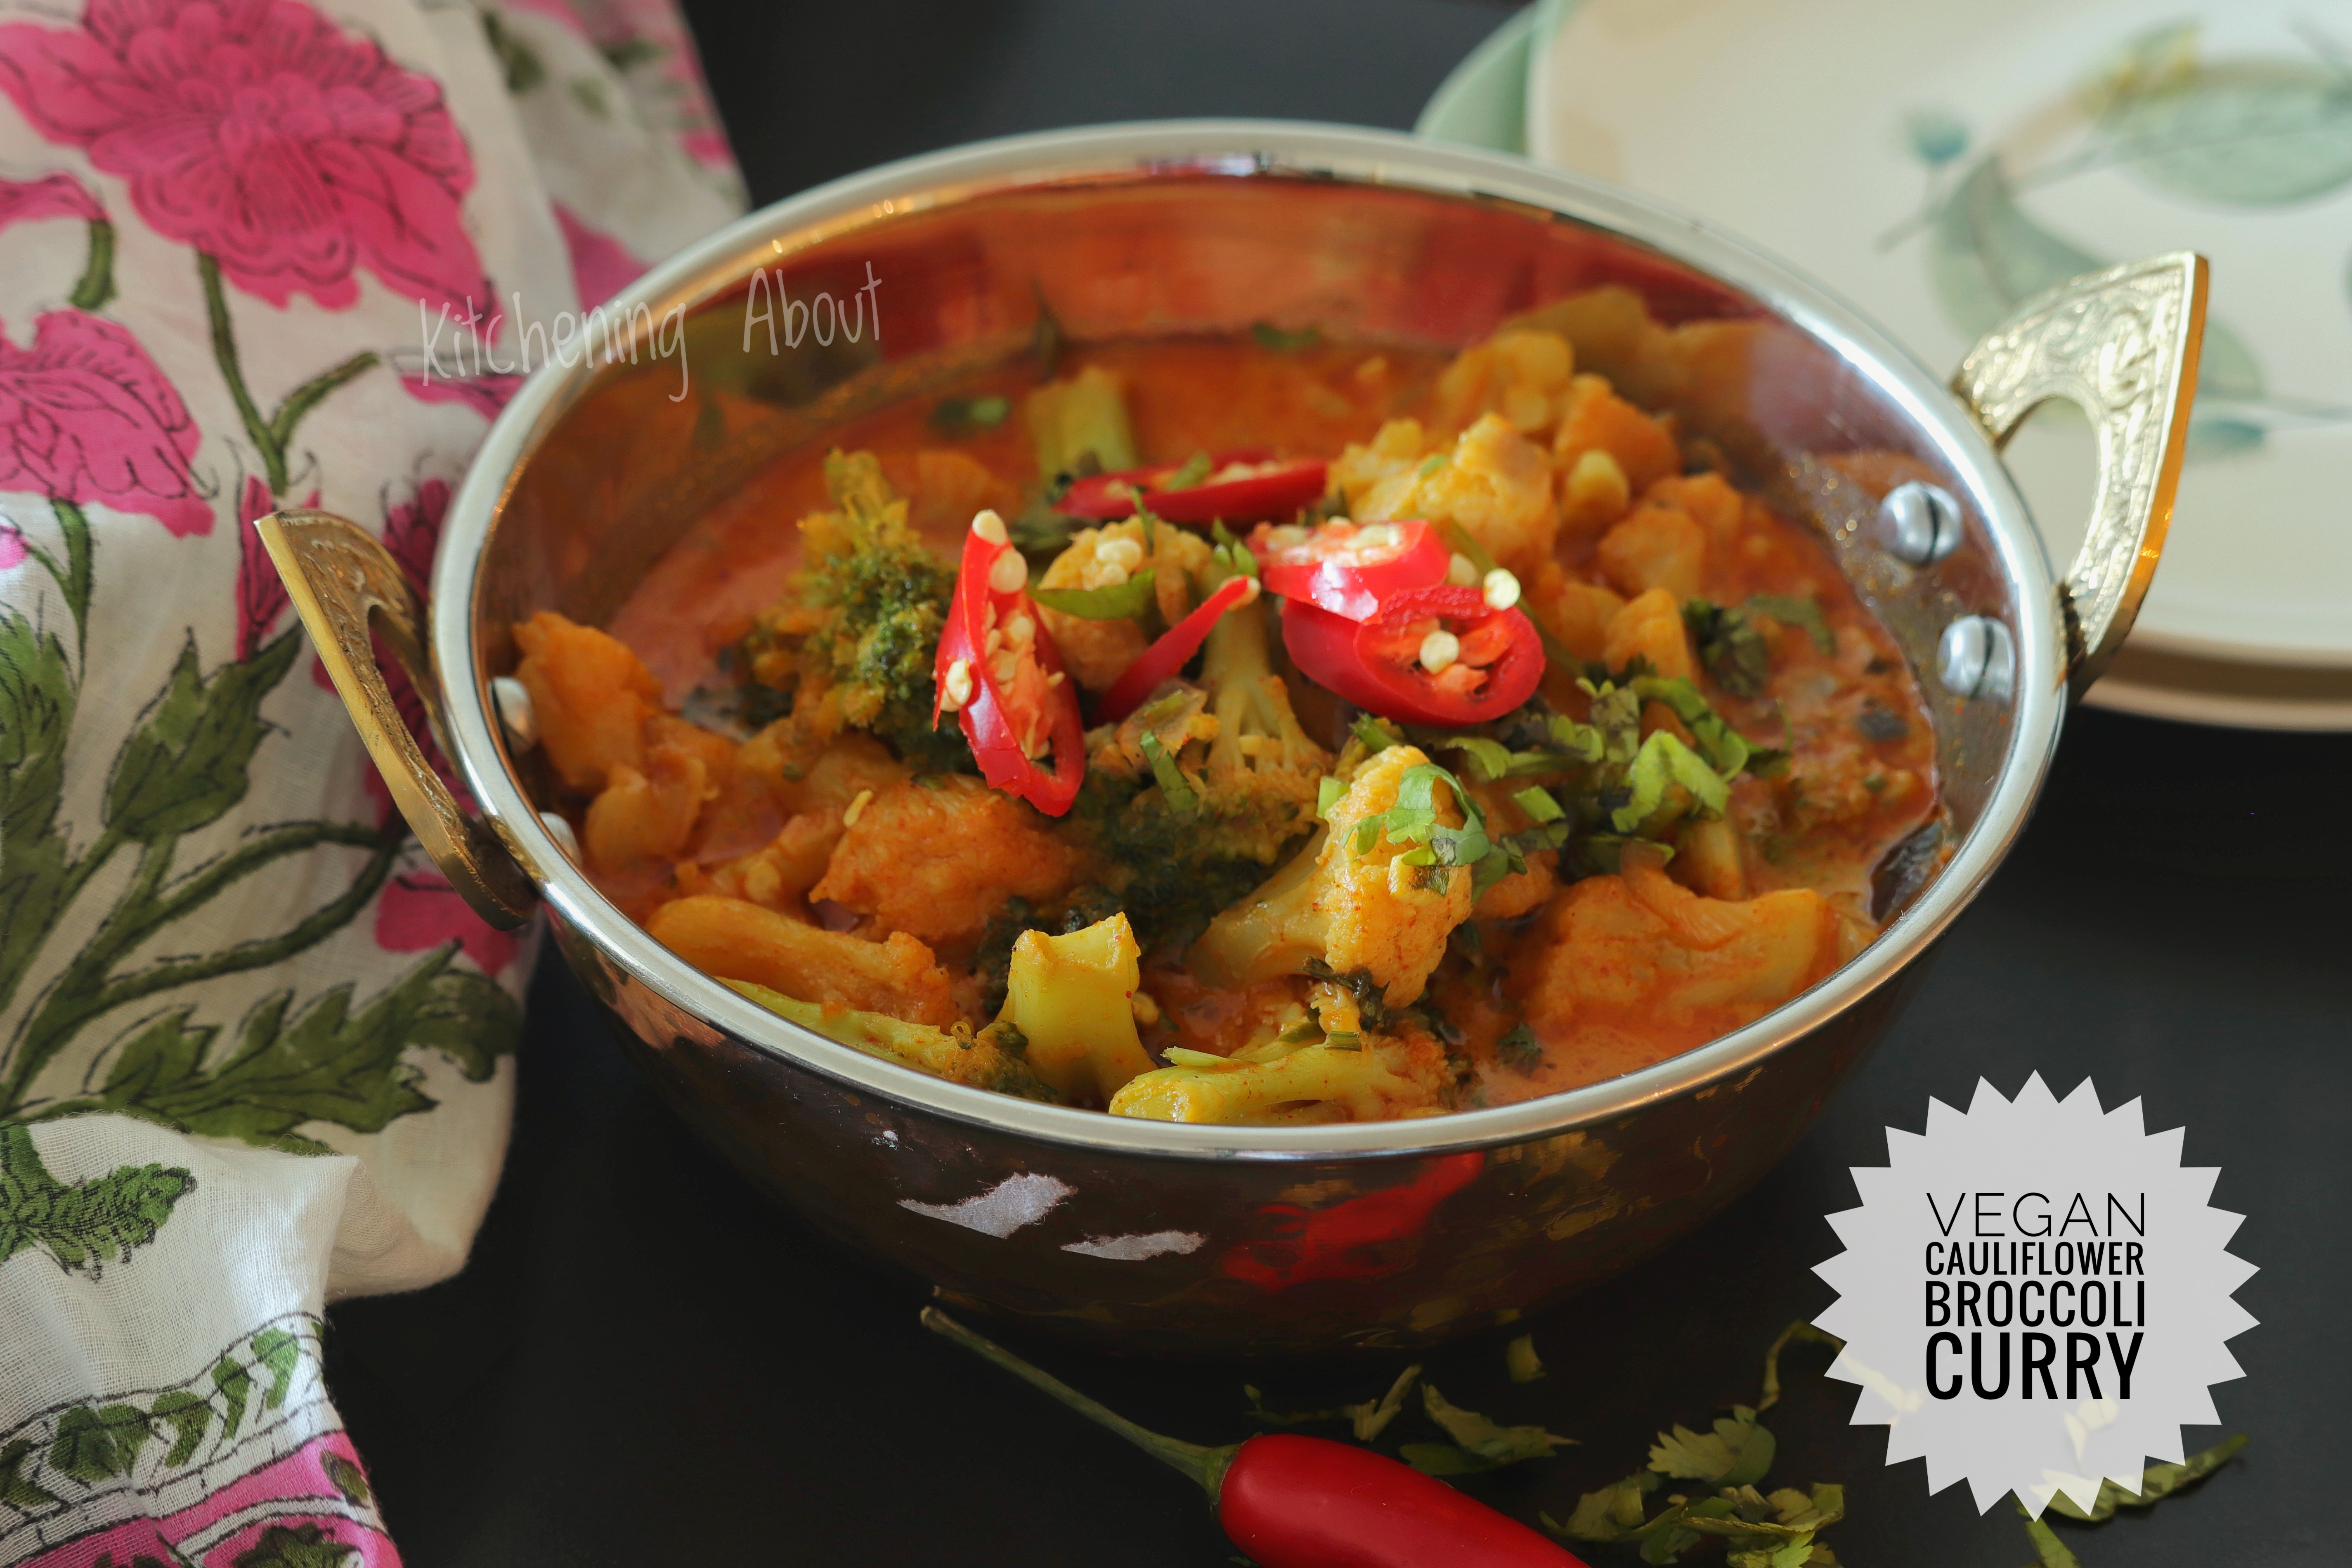 Vegan Cauliflower Broccoli Curry Low Carb And Keto Compliant Kitchening About